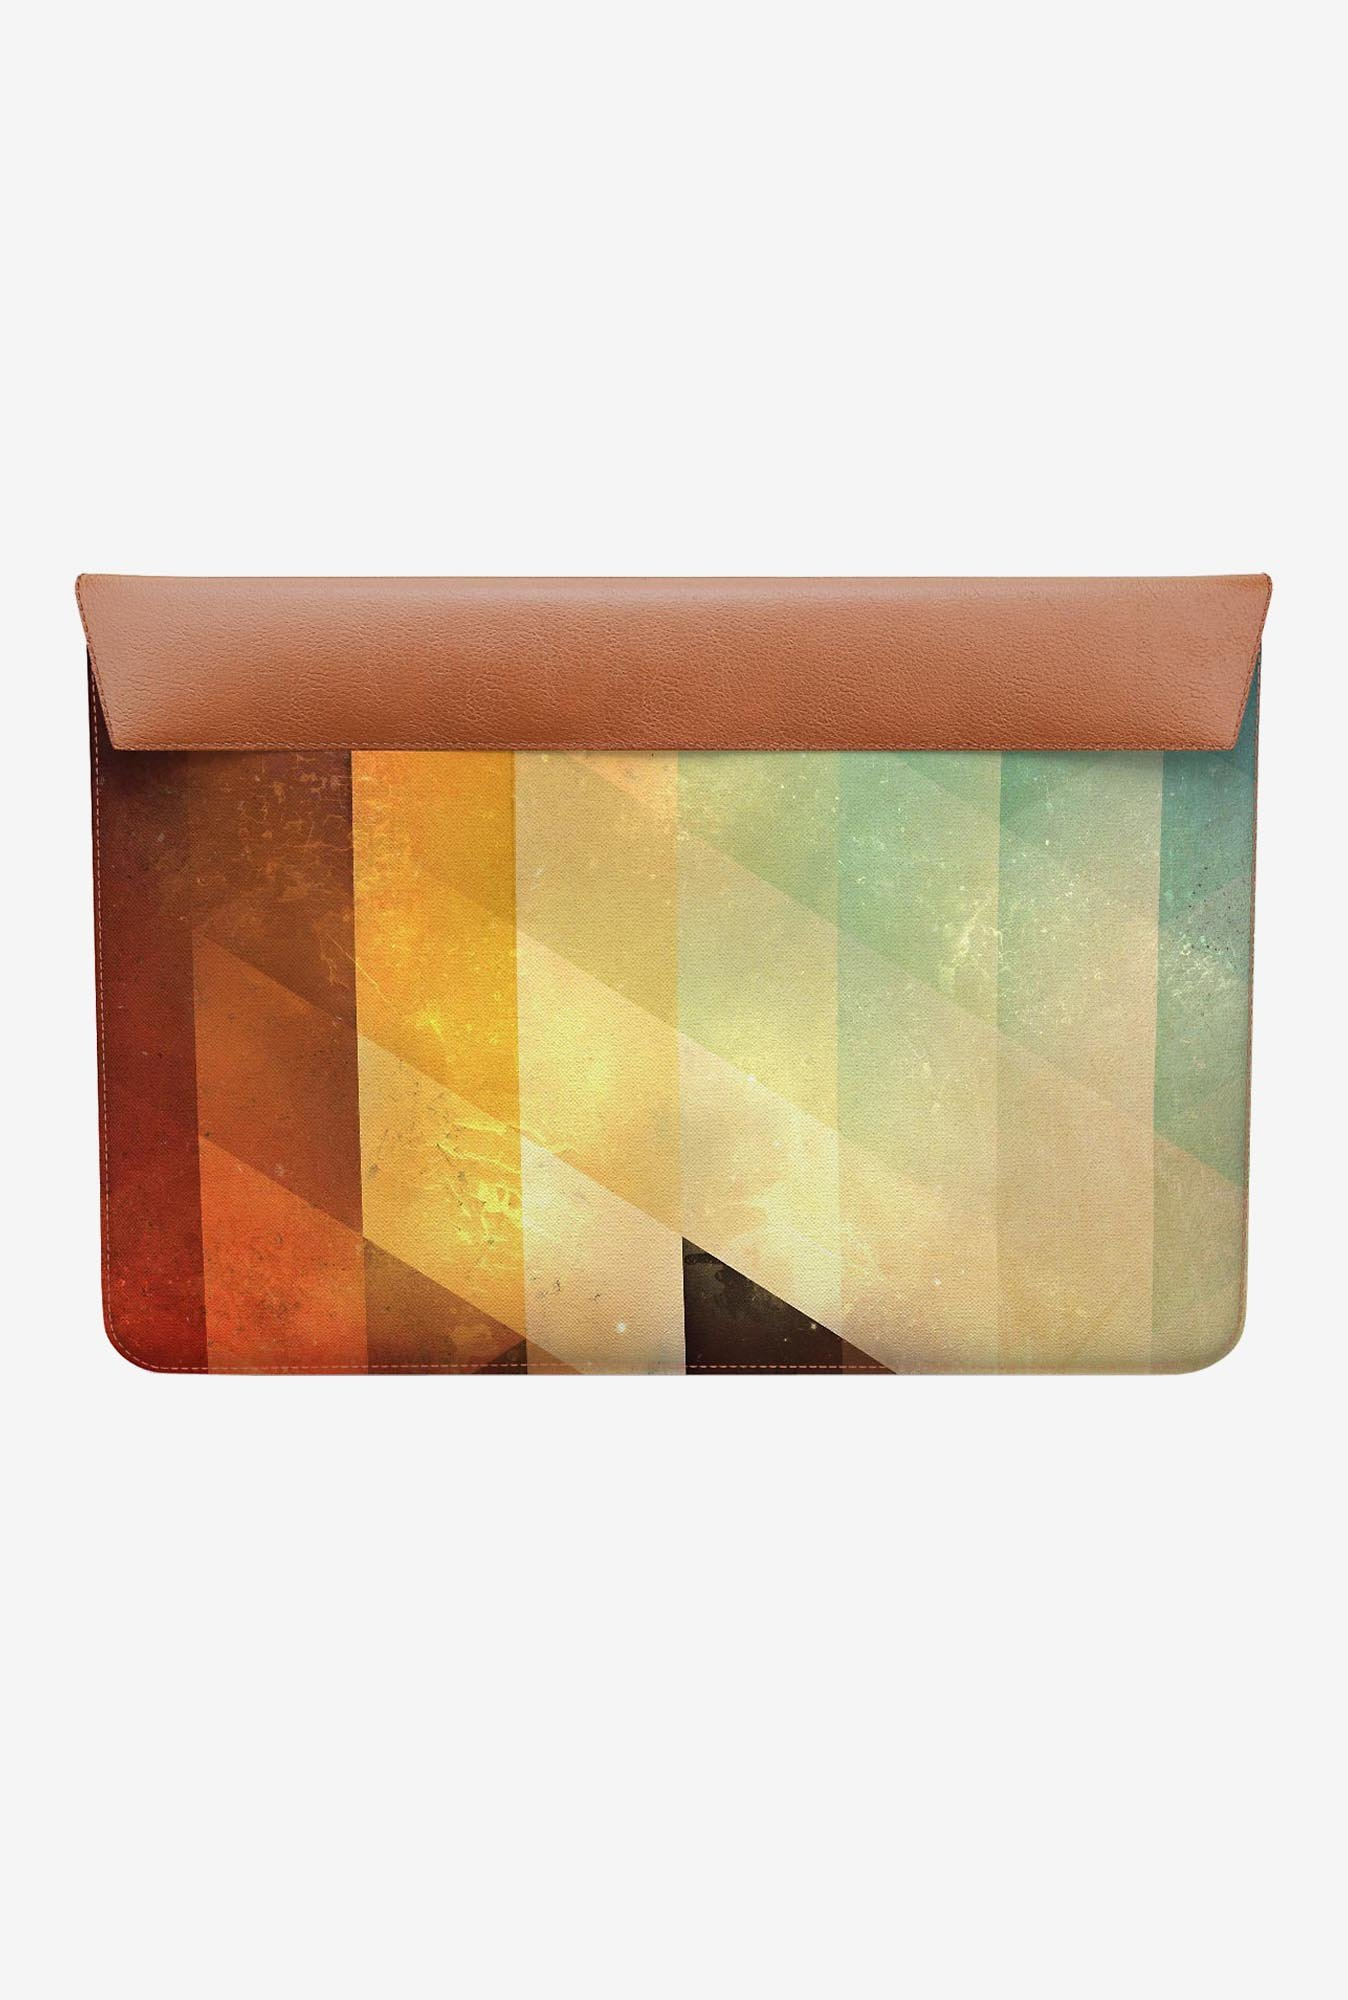 "DailyObjects Lyyt Lyyf Hrxtl Macbook Air 11"" Envelope Sleeve"